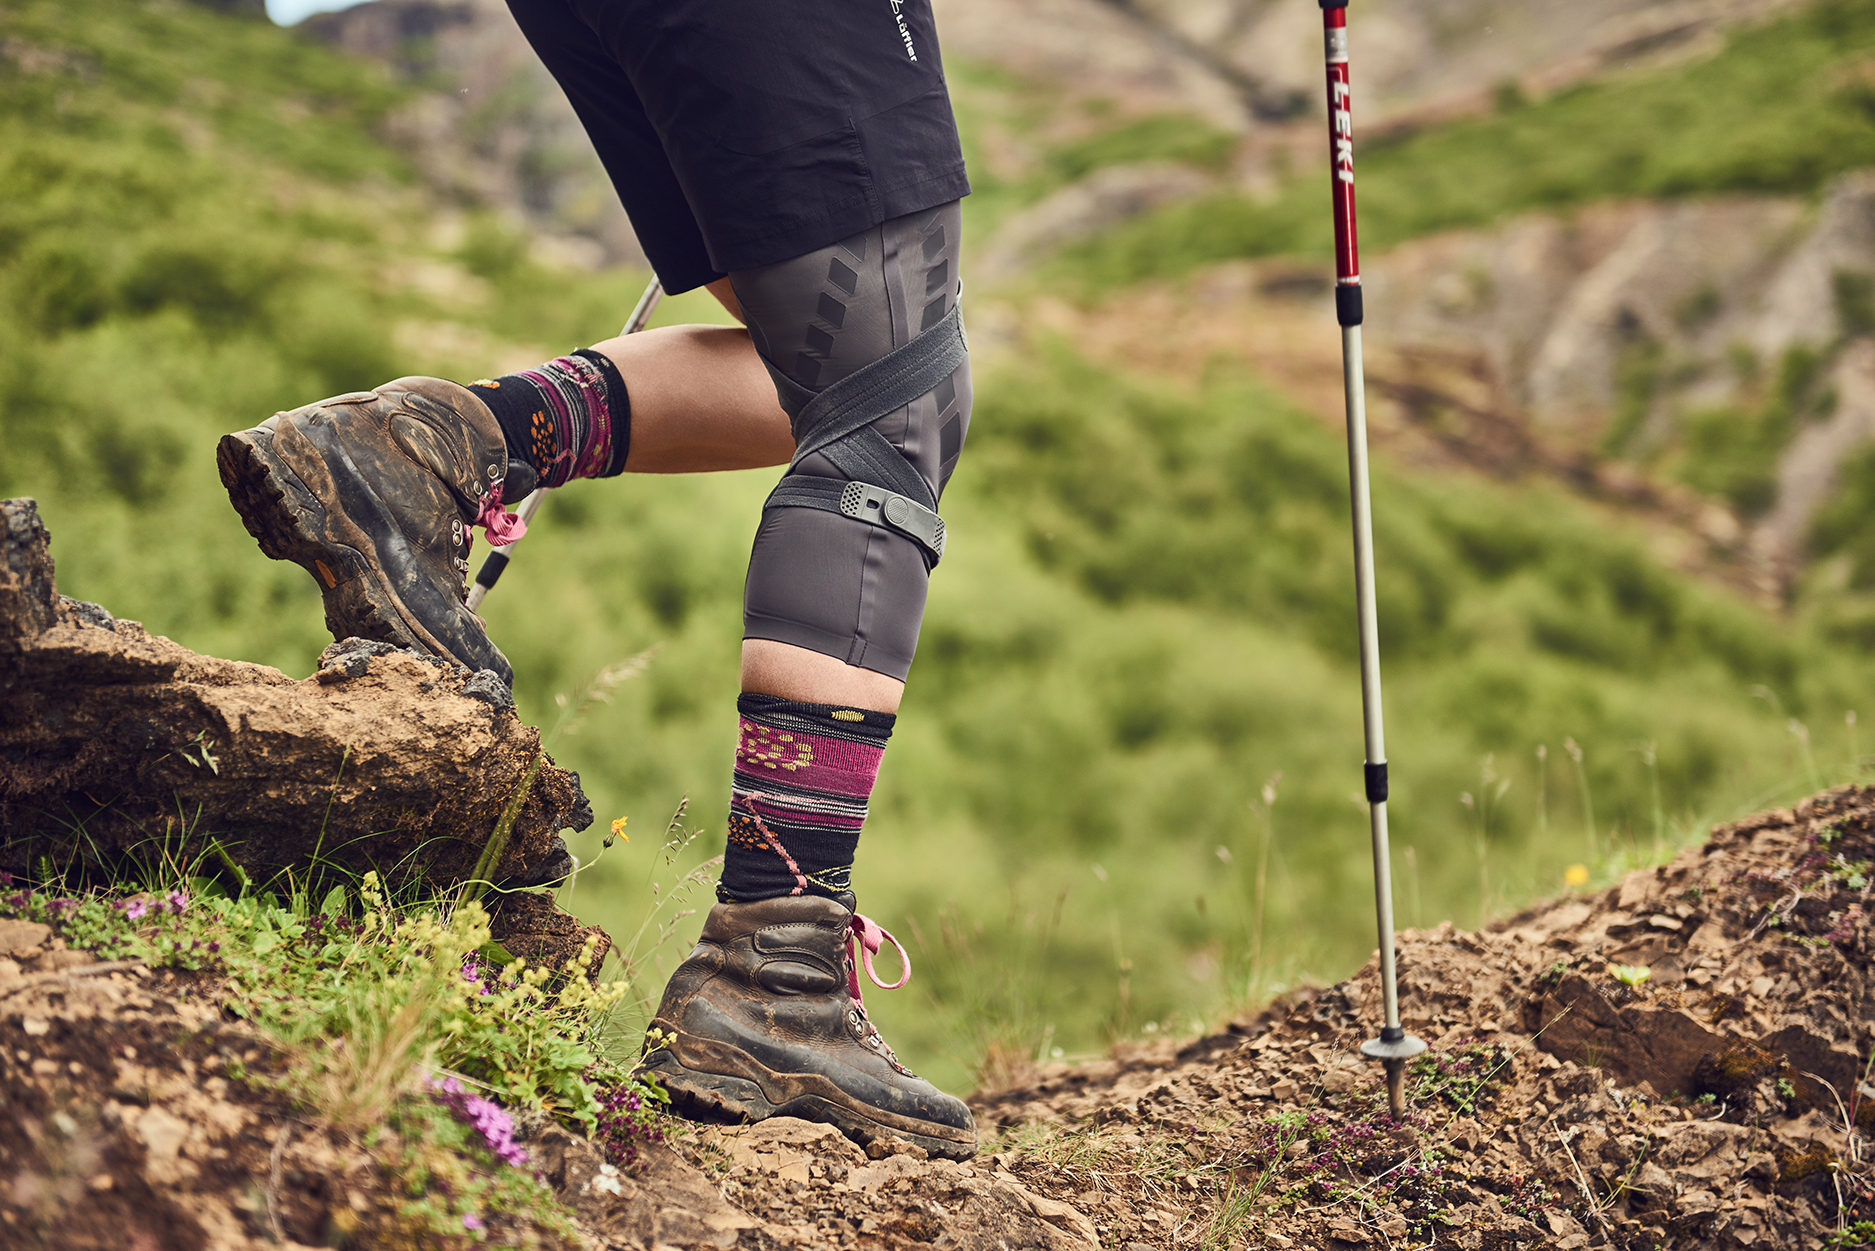 Knee brace can reduce pain while hiking